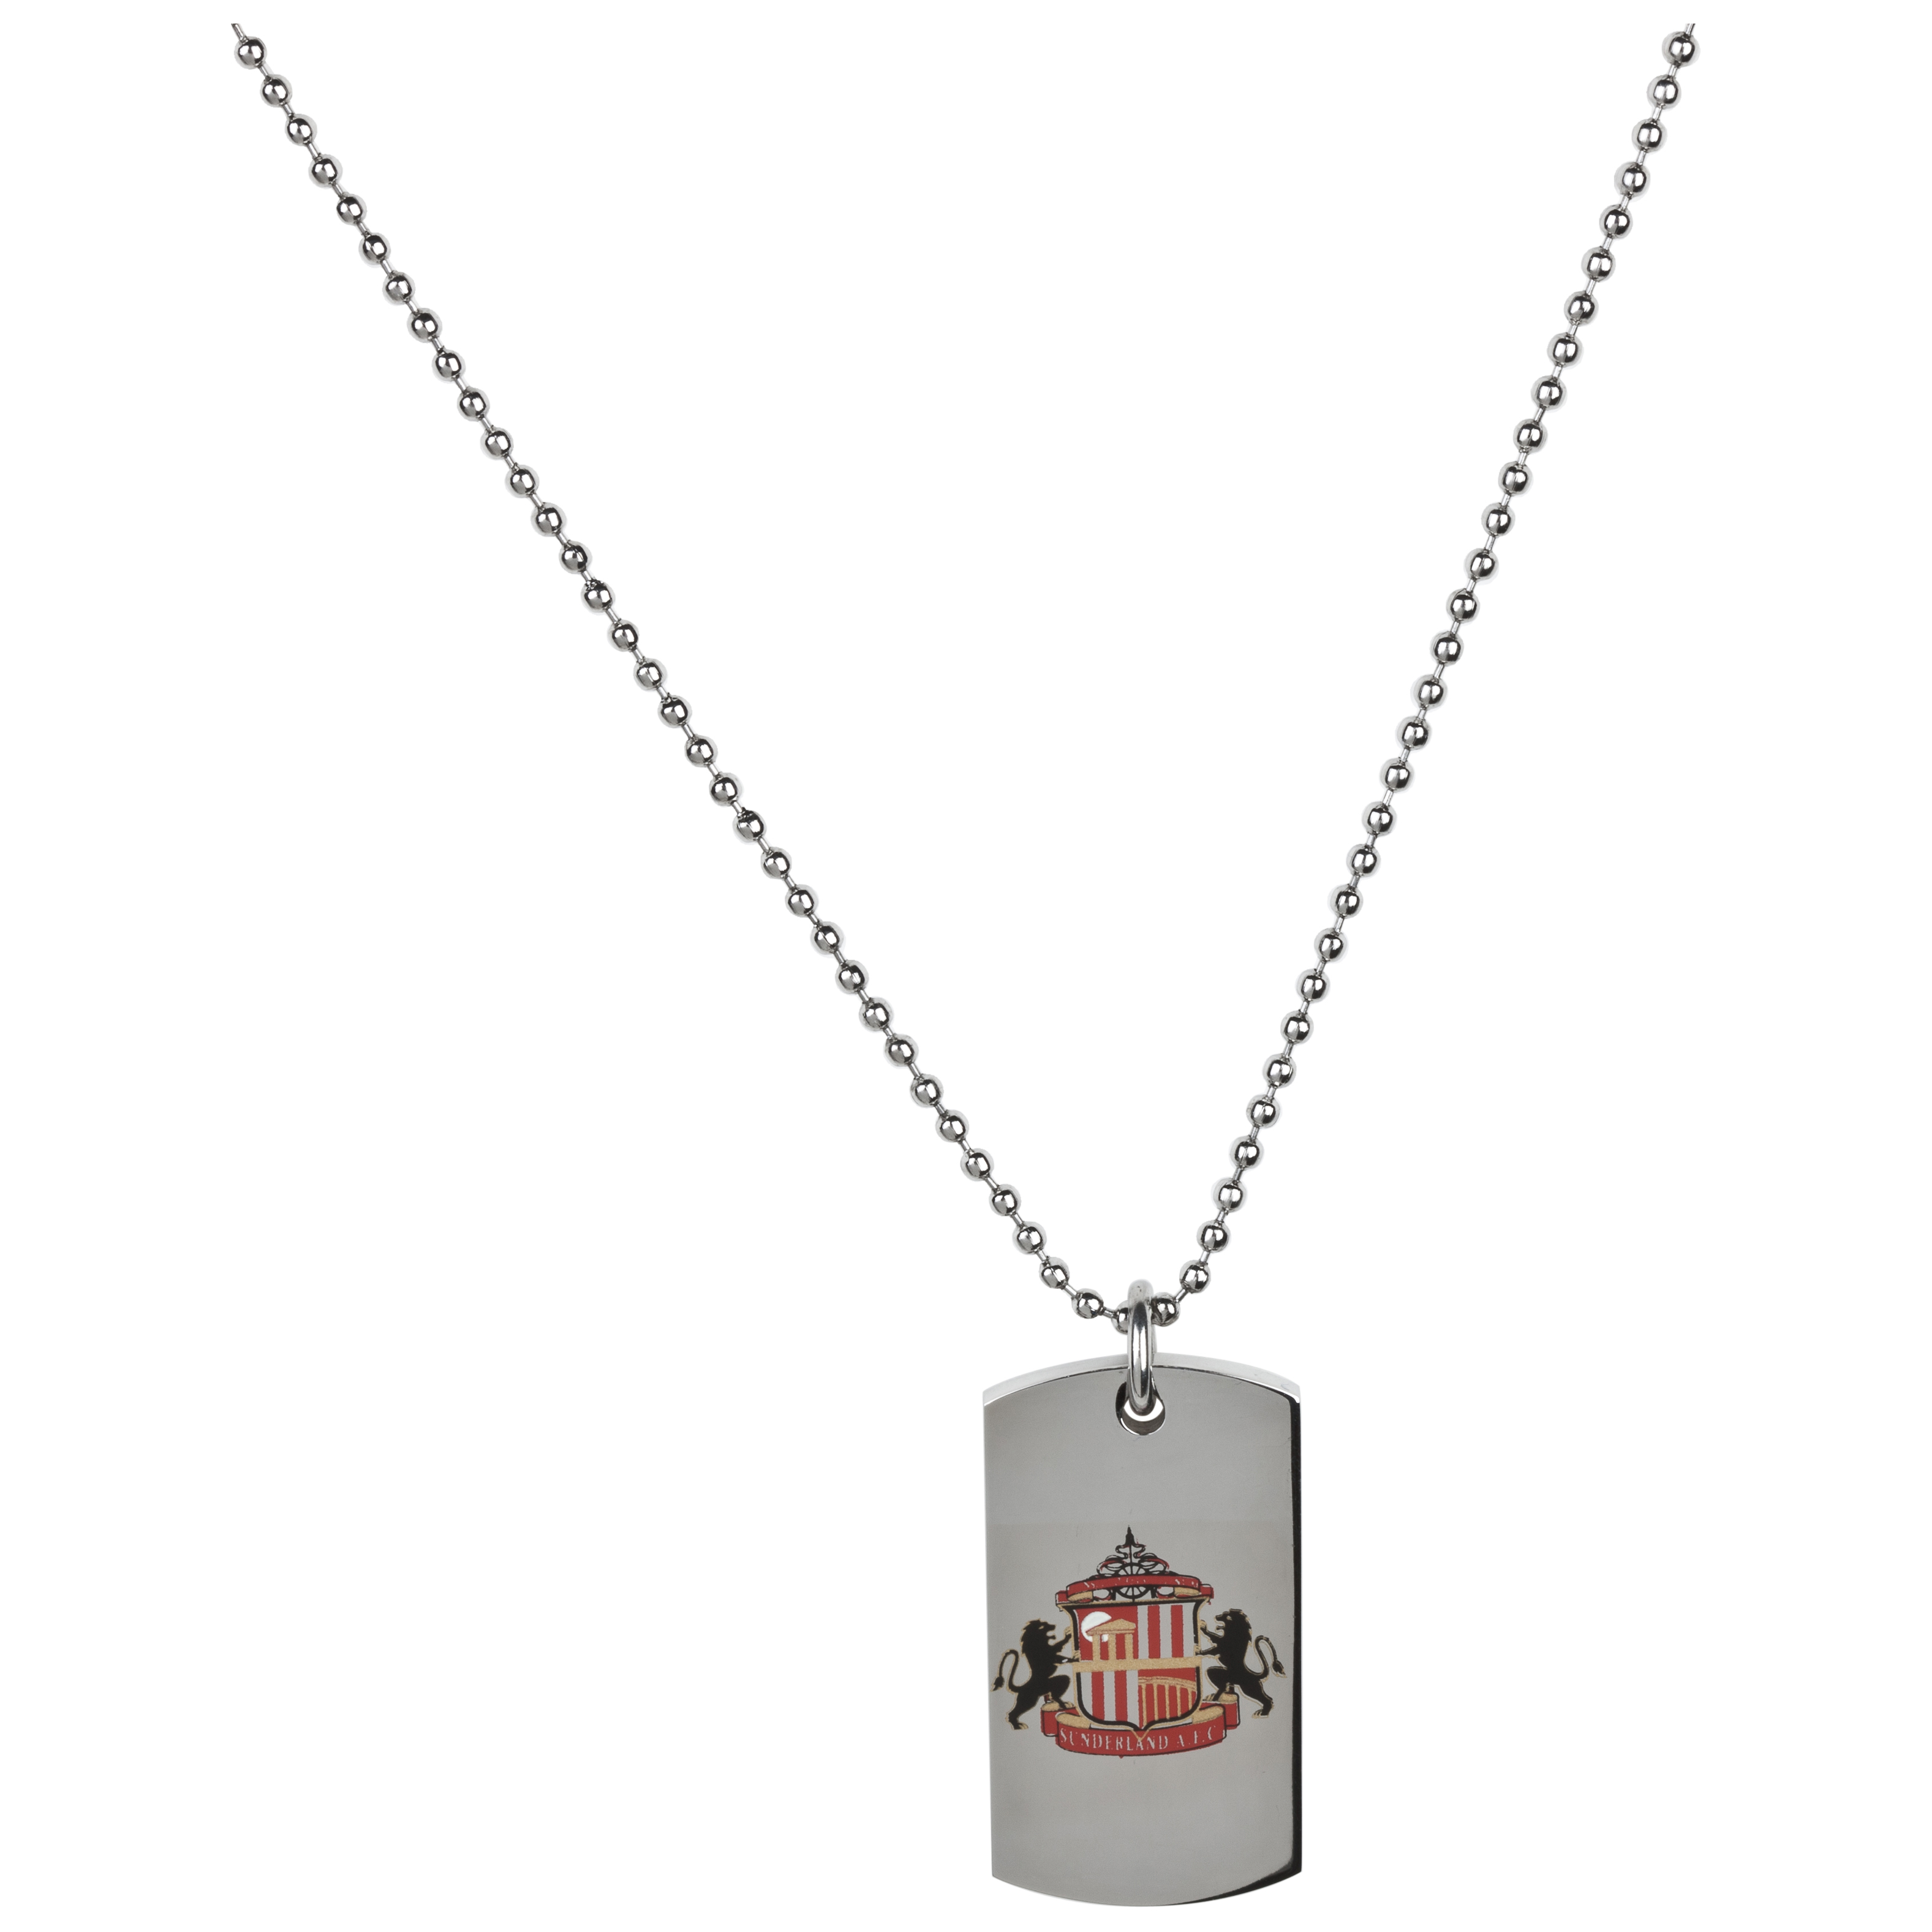 Sunderland Stainless Steel Colour Crest Dog Tag and Ball Chain